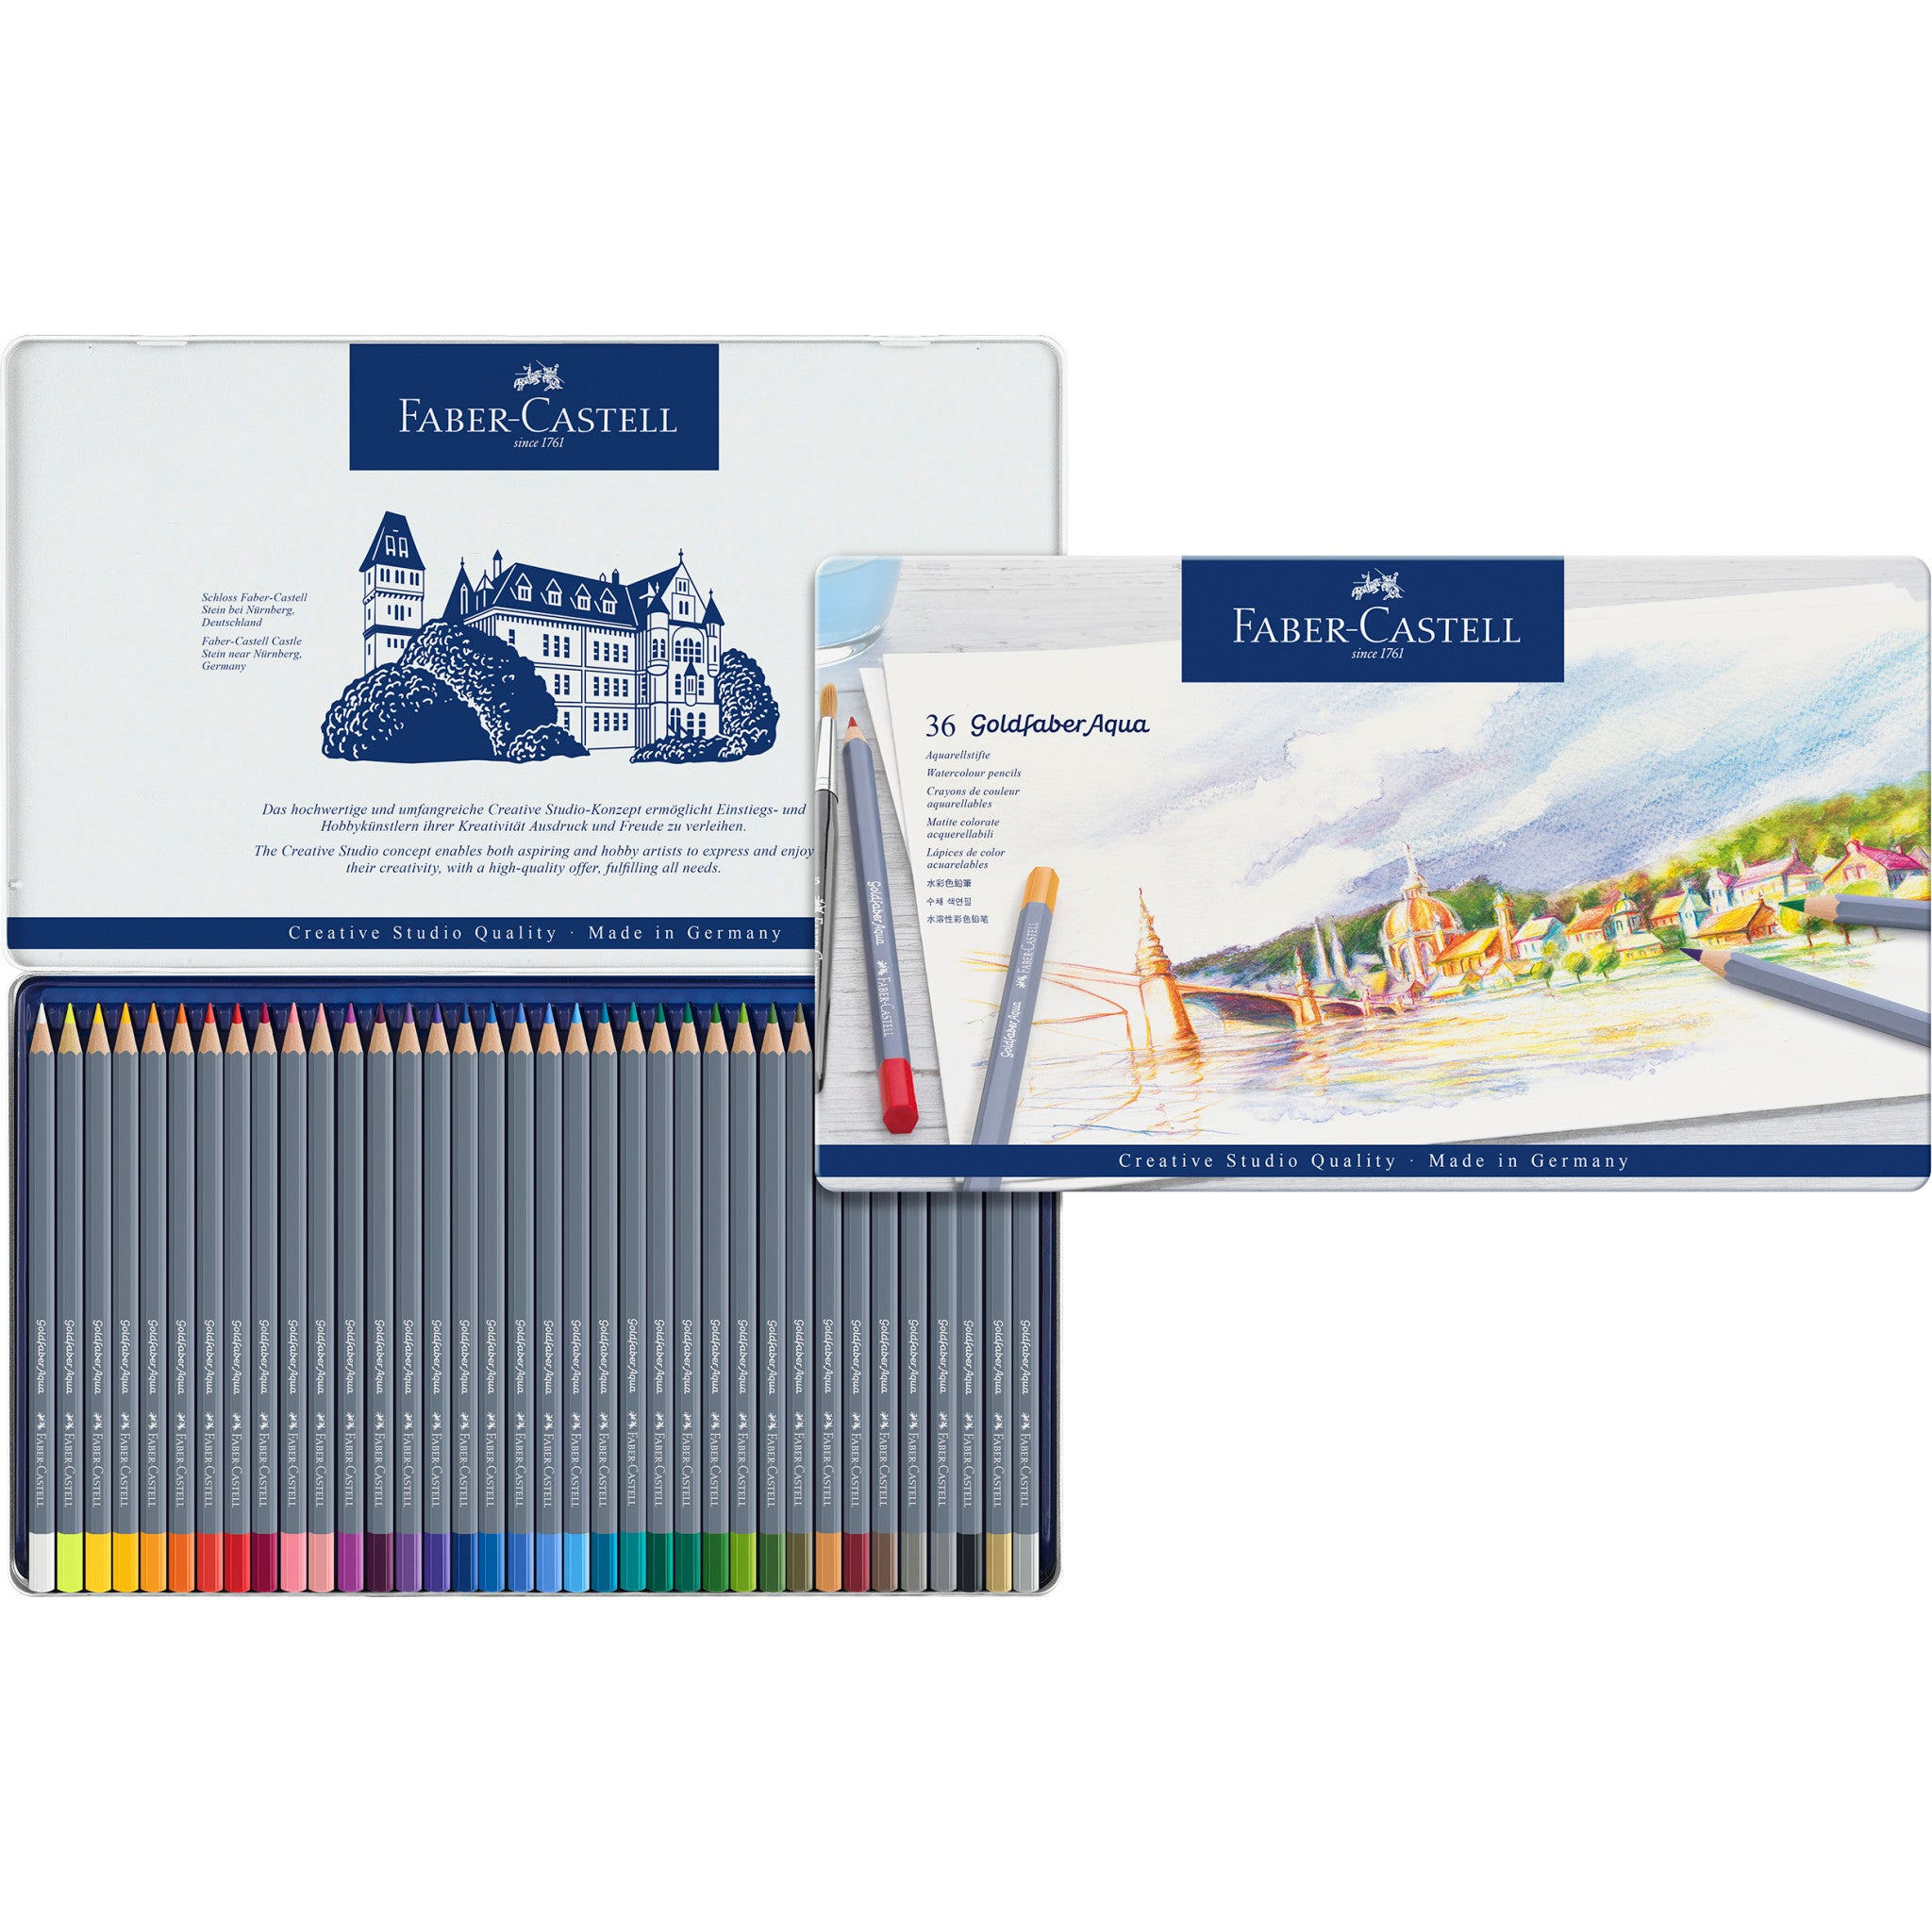 Goldfaber Aqua Watercolor Pencils Tin Of 36 114636 Faber